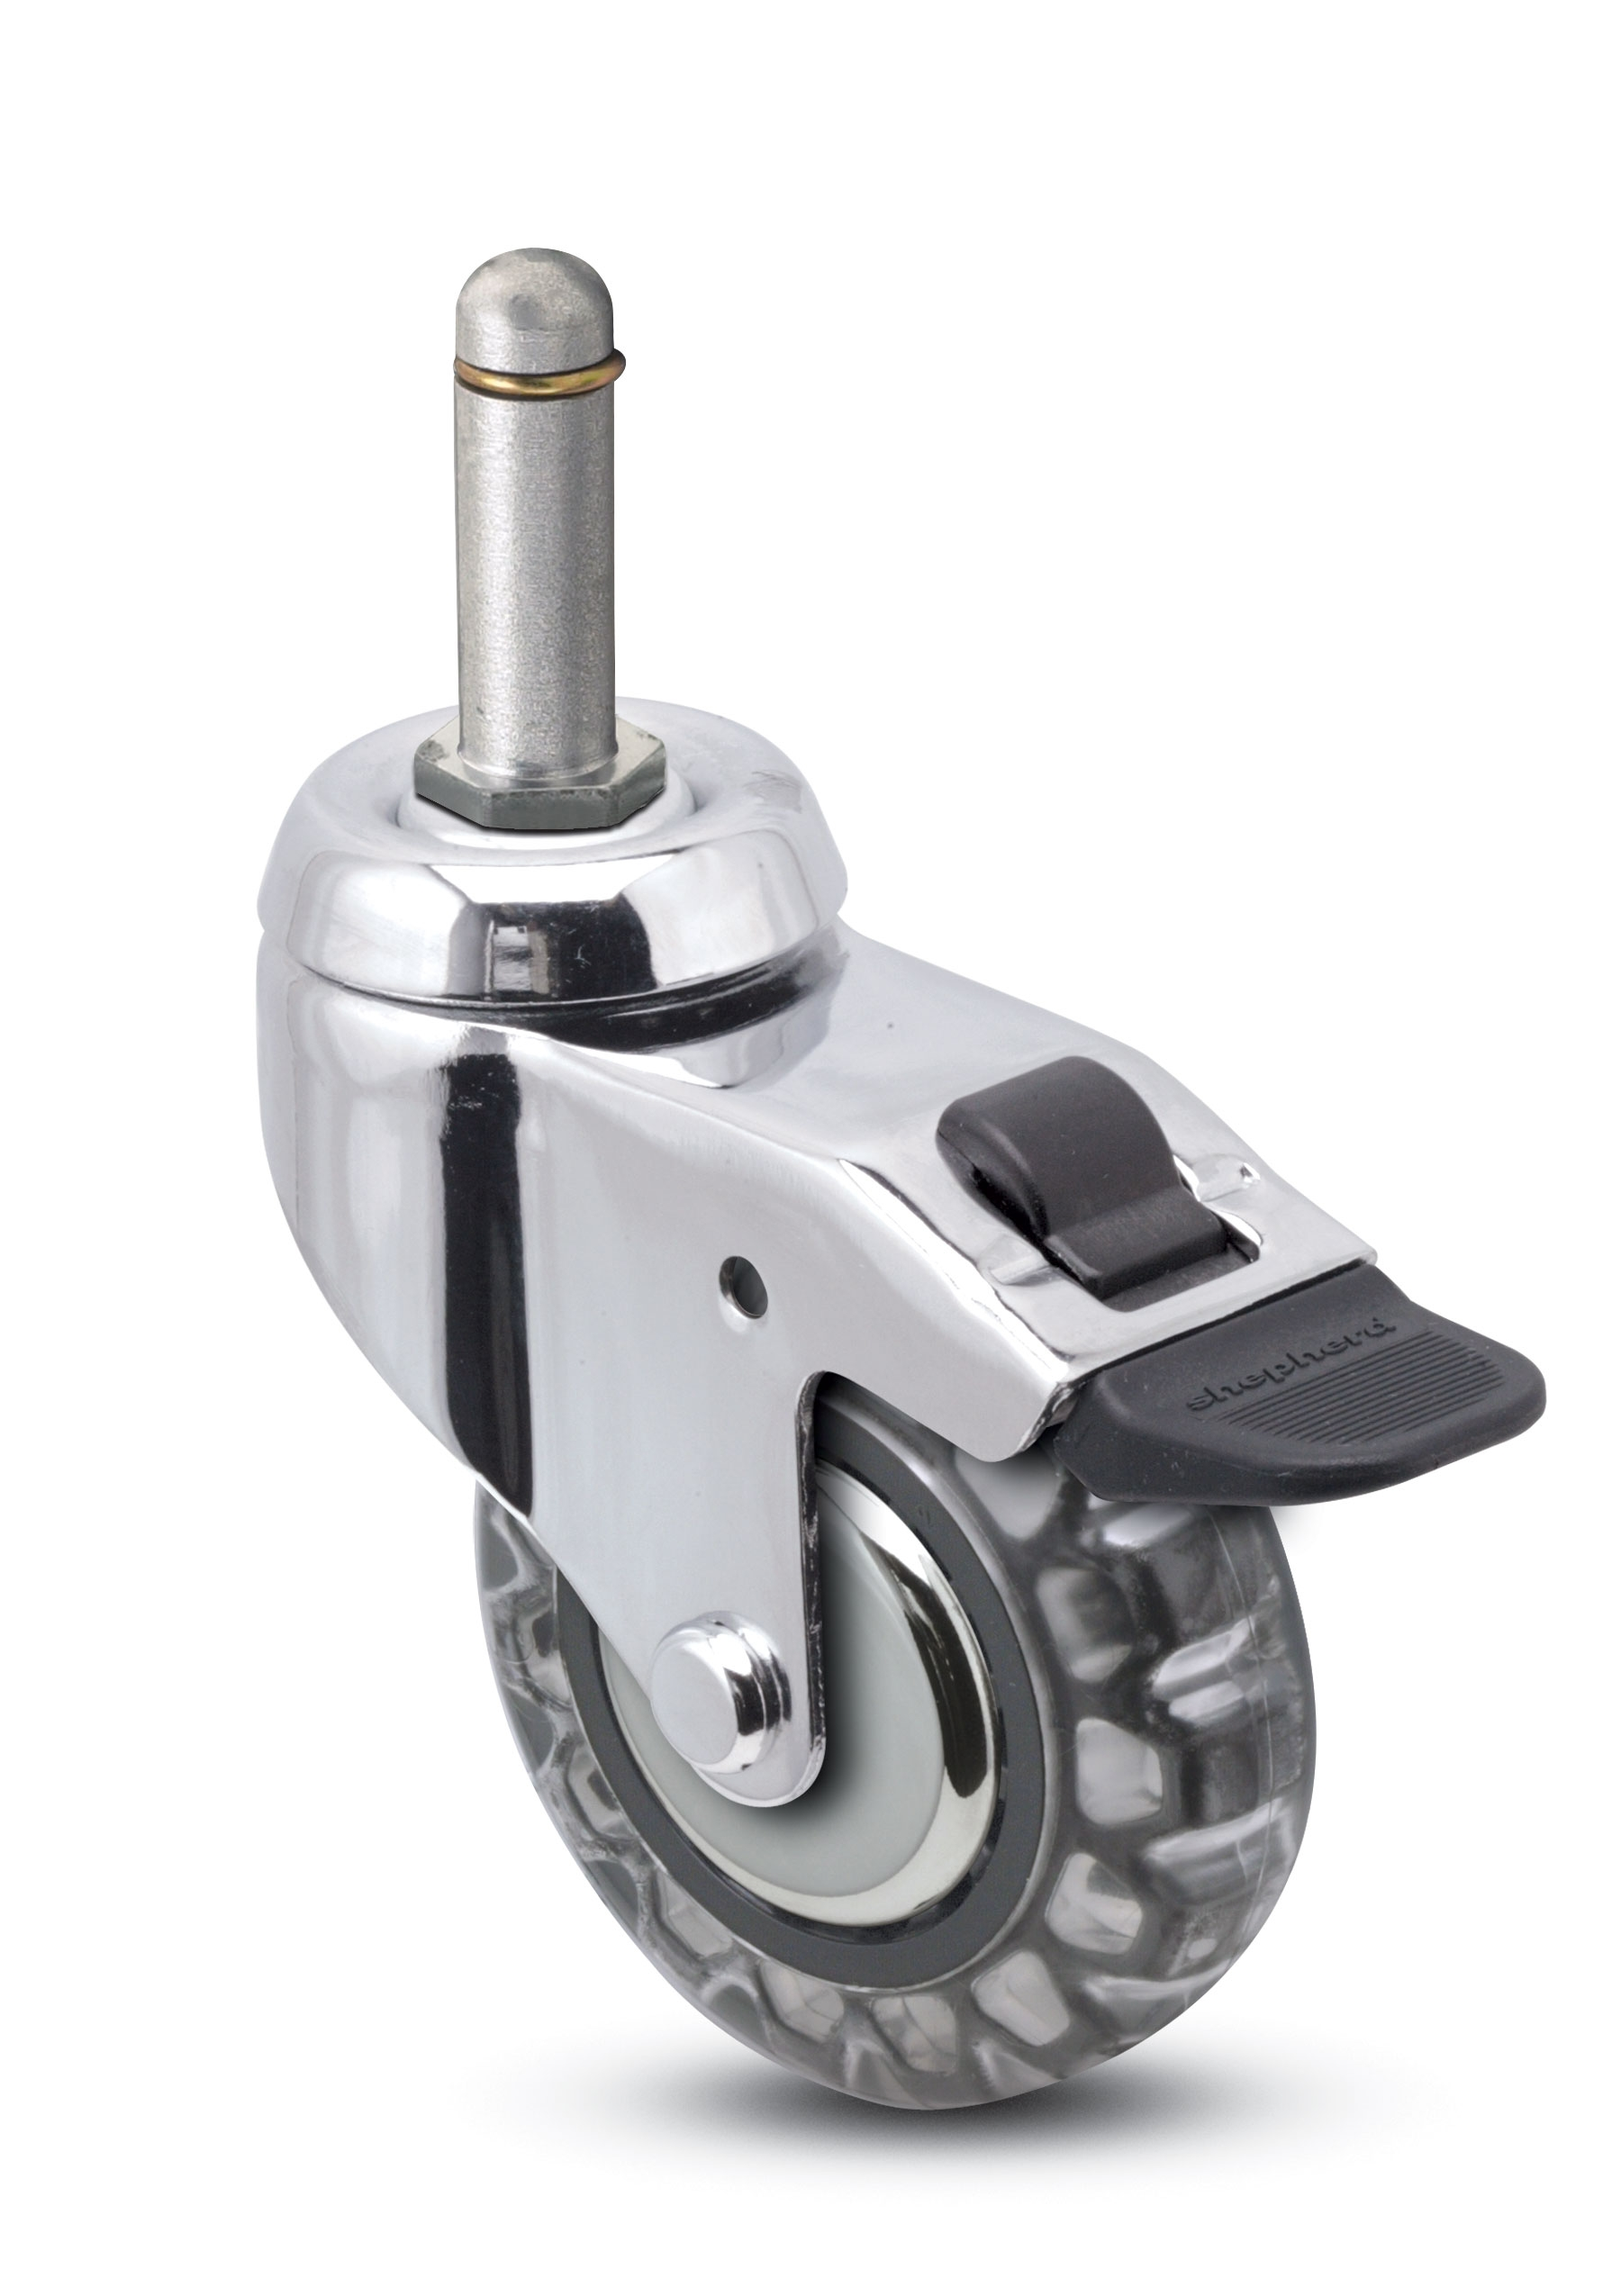 "Caster; Swivel; 3"" x 15/16""; Polyurethane (Clear); Grip Ring (7/16"" x 7/8""); Chrome; Precision Ball Brng; 120#; Total Lock Brake: Thread Guards (65742)"